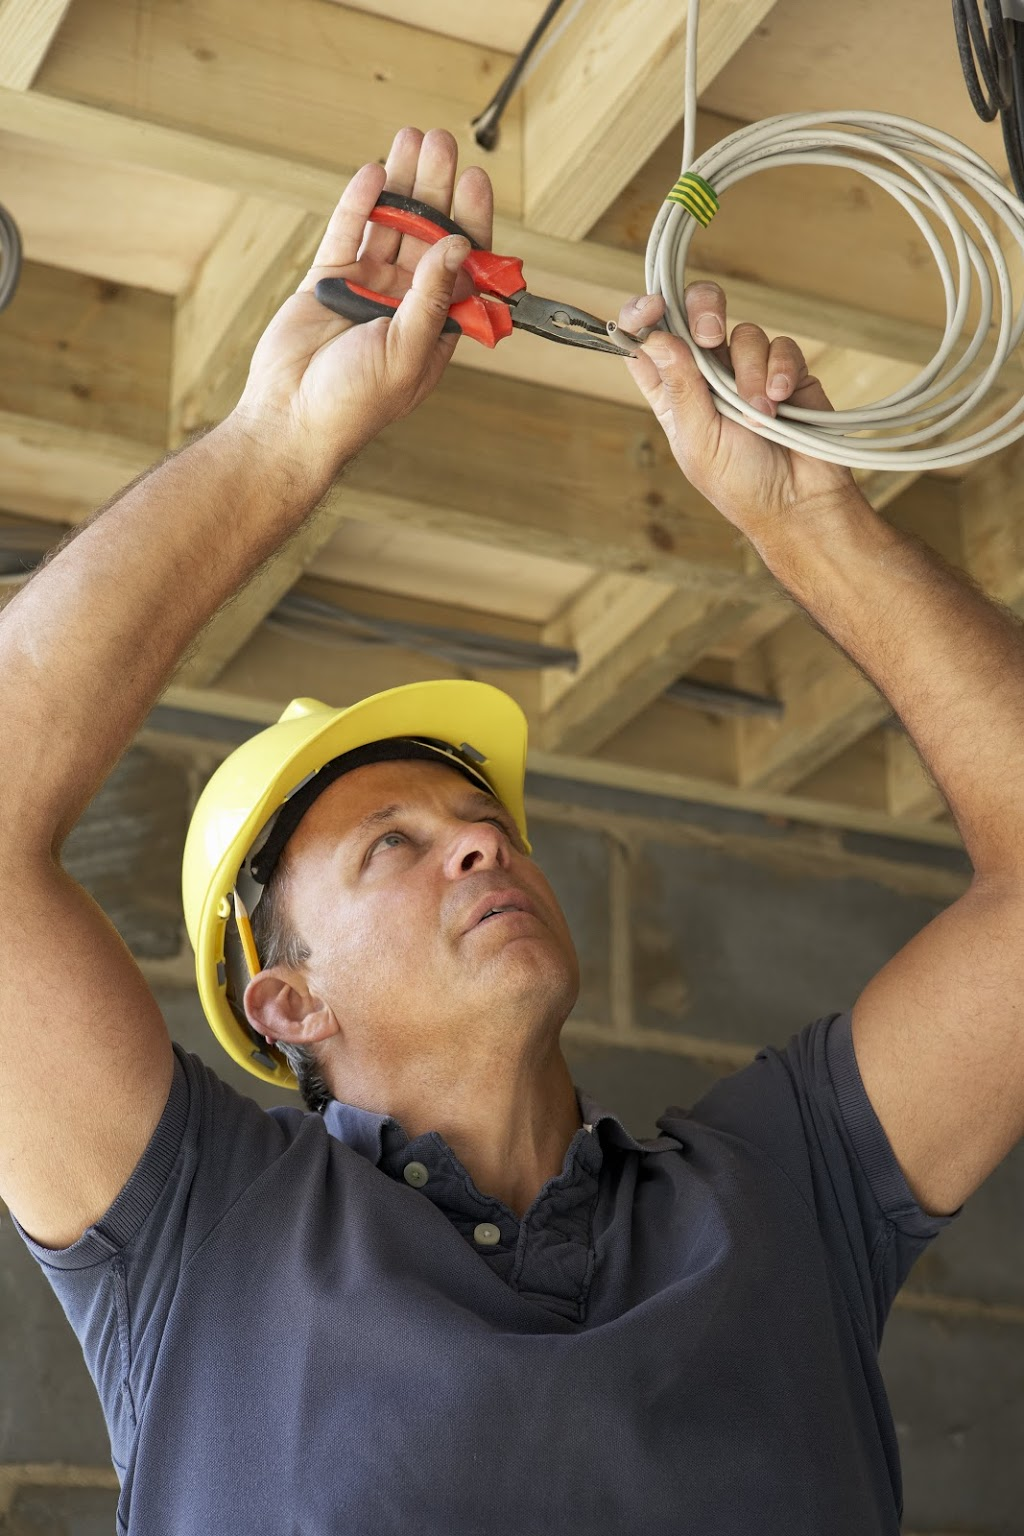 Port Hacking Electrician   electrician   Level 2 Electrcian Port Hacking, No Power Electrician, Emergency Electric Connect, Port Hacking NSW 2229, Australia   0488825480 OR +61 488 825 480